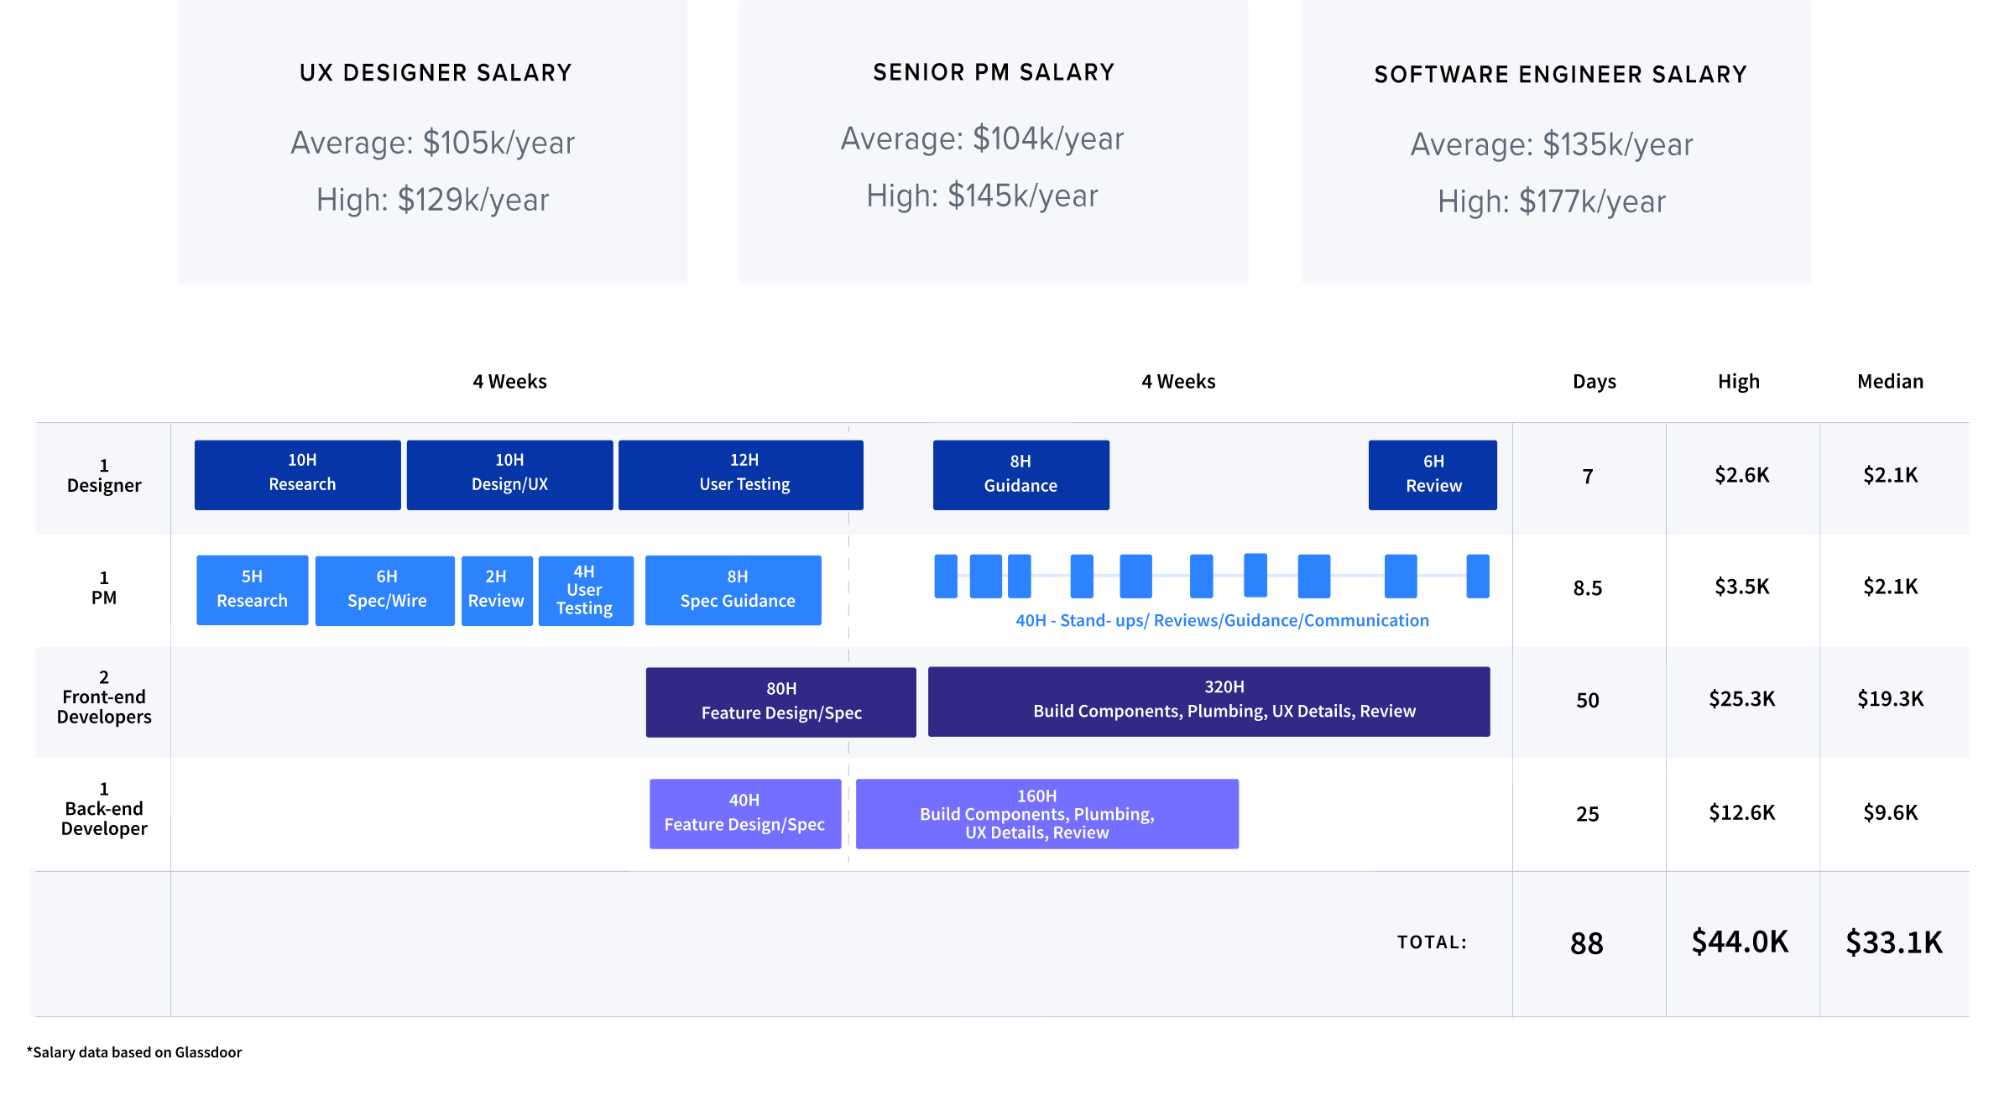 the cost benefit analysis of building an onboarding experience in house or using Appcues